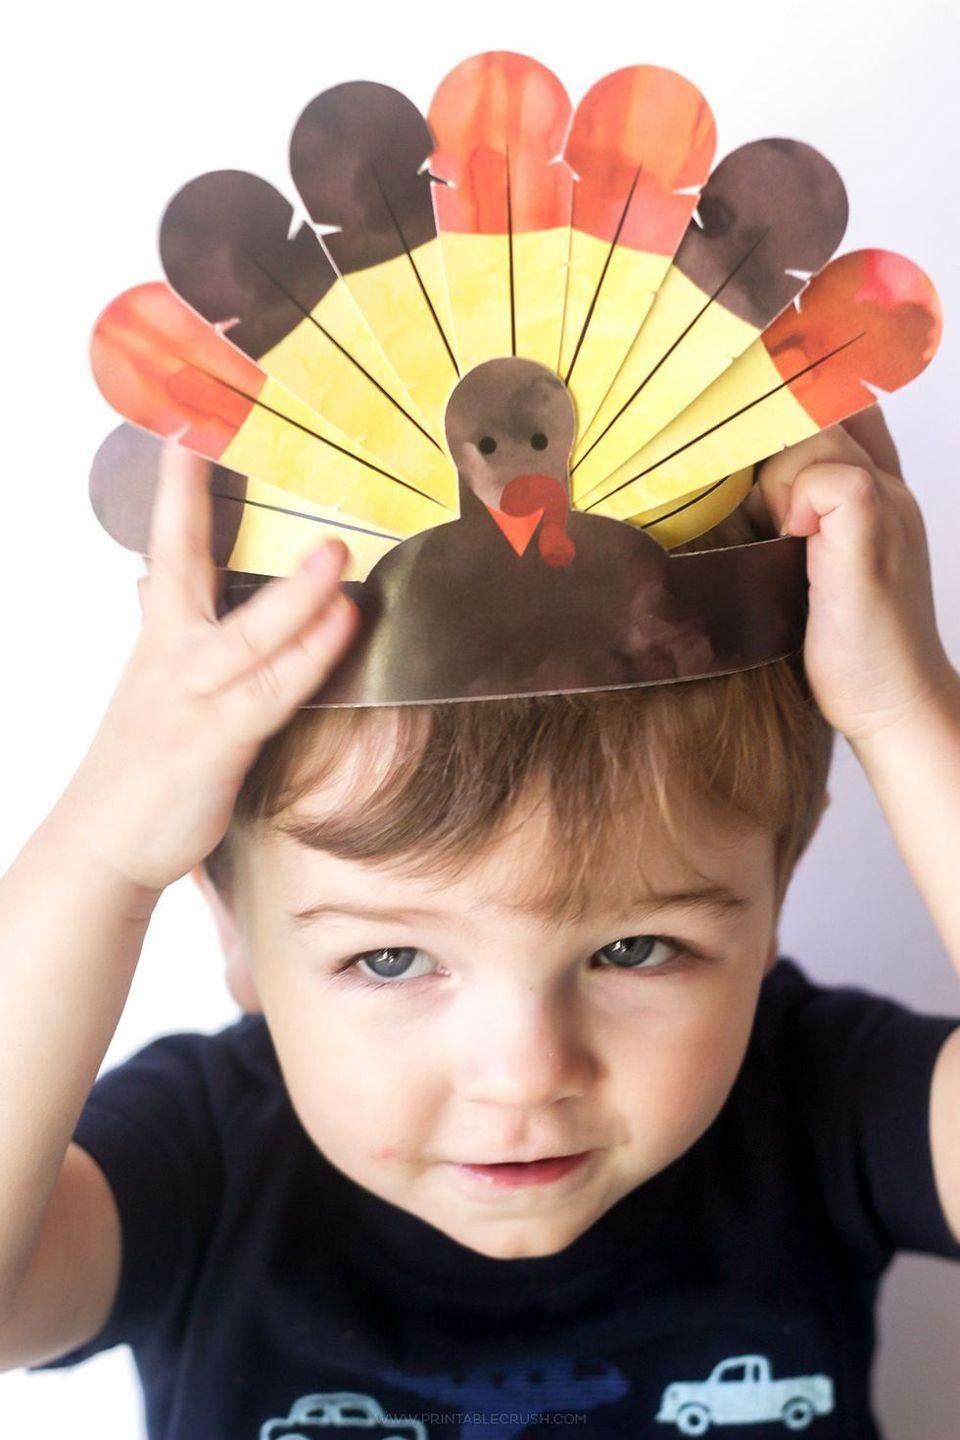 "<p>Your kids will feel so special wearing these crowns all dinner long. To keep them feeling sturdy, try printing them onto cardstock (rather than regular paper). </p><p><strong>Get the tutorial at <a href=""https://printablecrush.com/free-printable-thanksgiving-turkey-crowns/"" rel=""nofollow noopener"" target=""_blank"" data-ylk=""slk:Printable Crush"" class=""link rapid-noclick-resp"">Printable Crush</a>.</strong></p><p><strong><a class=""link rapid-noclick-resp"" href=""https://www.amazon.com/Inches-Letter-Sheets-Smooth-216gsm/dp/B00RU6IGAS?tag=syn-yahoo-20&ascsubtag=%5Bartid%7C10050.g.22626432%5Bsrc%7Cyahoo-us"" rel=""nofollow noopener"" target=""_blank"" data-ylk=""slk:SHOP CARDSTOCK"">SHOP CARDSTOCK</a></strong></p>"